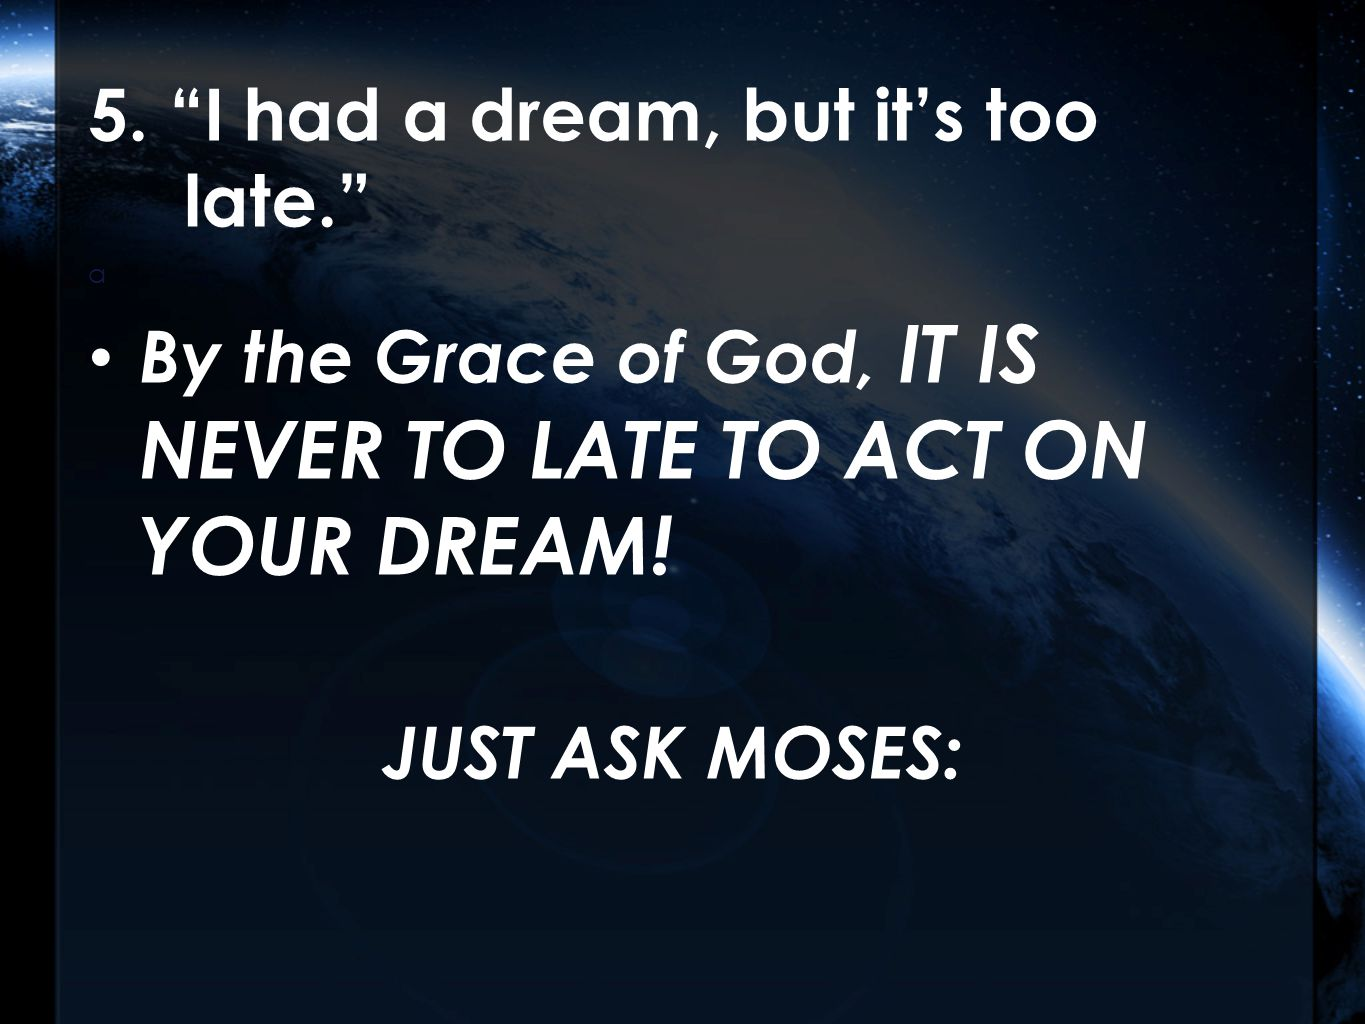 """5. """"I had a dream, but it's too late."""" a By the Grace of God, IT IS NEVER TO LATE TO ACT ON YOUR DREAM! JUST ASK MOSES:"""